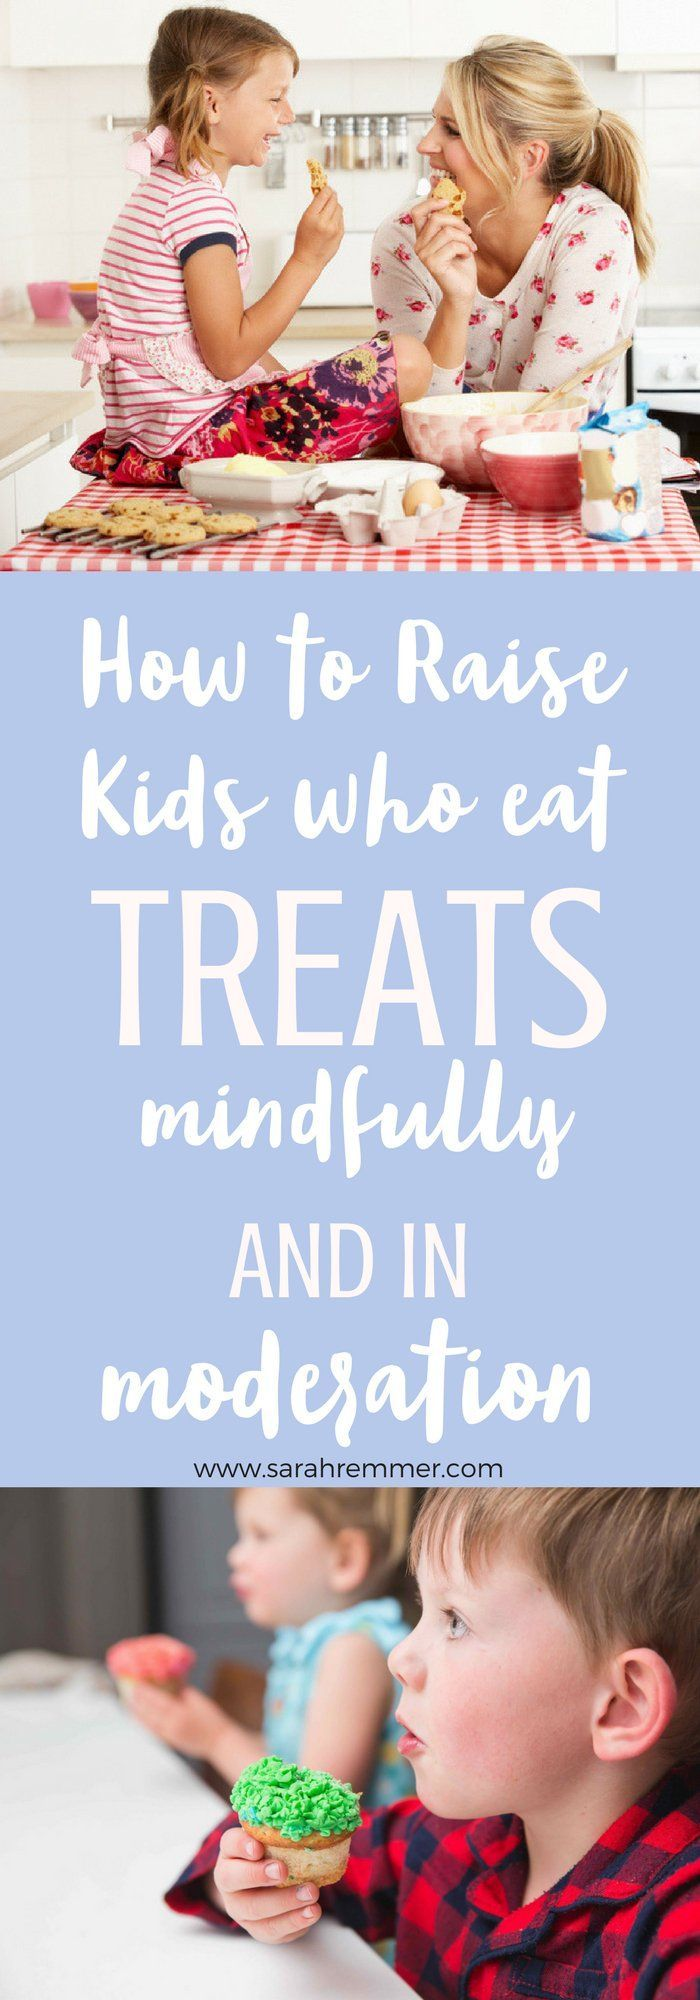 sarahremmer.com | 5 Secrets to Raising Kids Who Eat Treats Mindfully and in Moderation